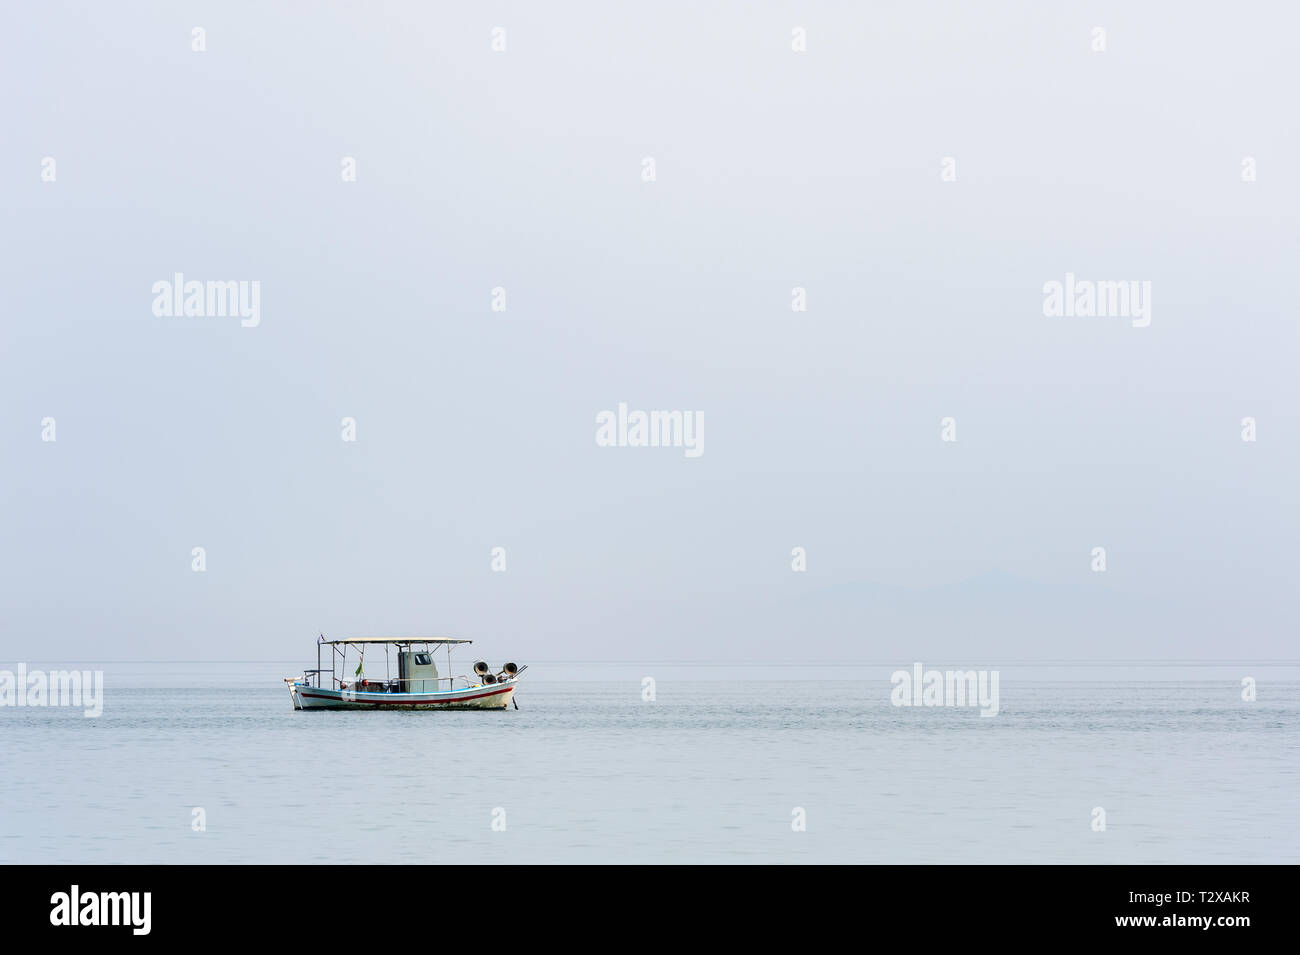 Two small fishing boat at sea surface - Stock Image